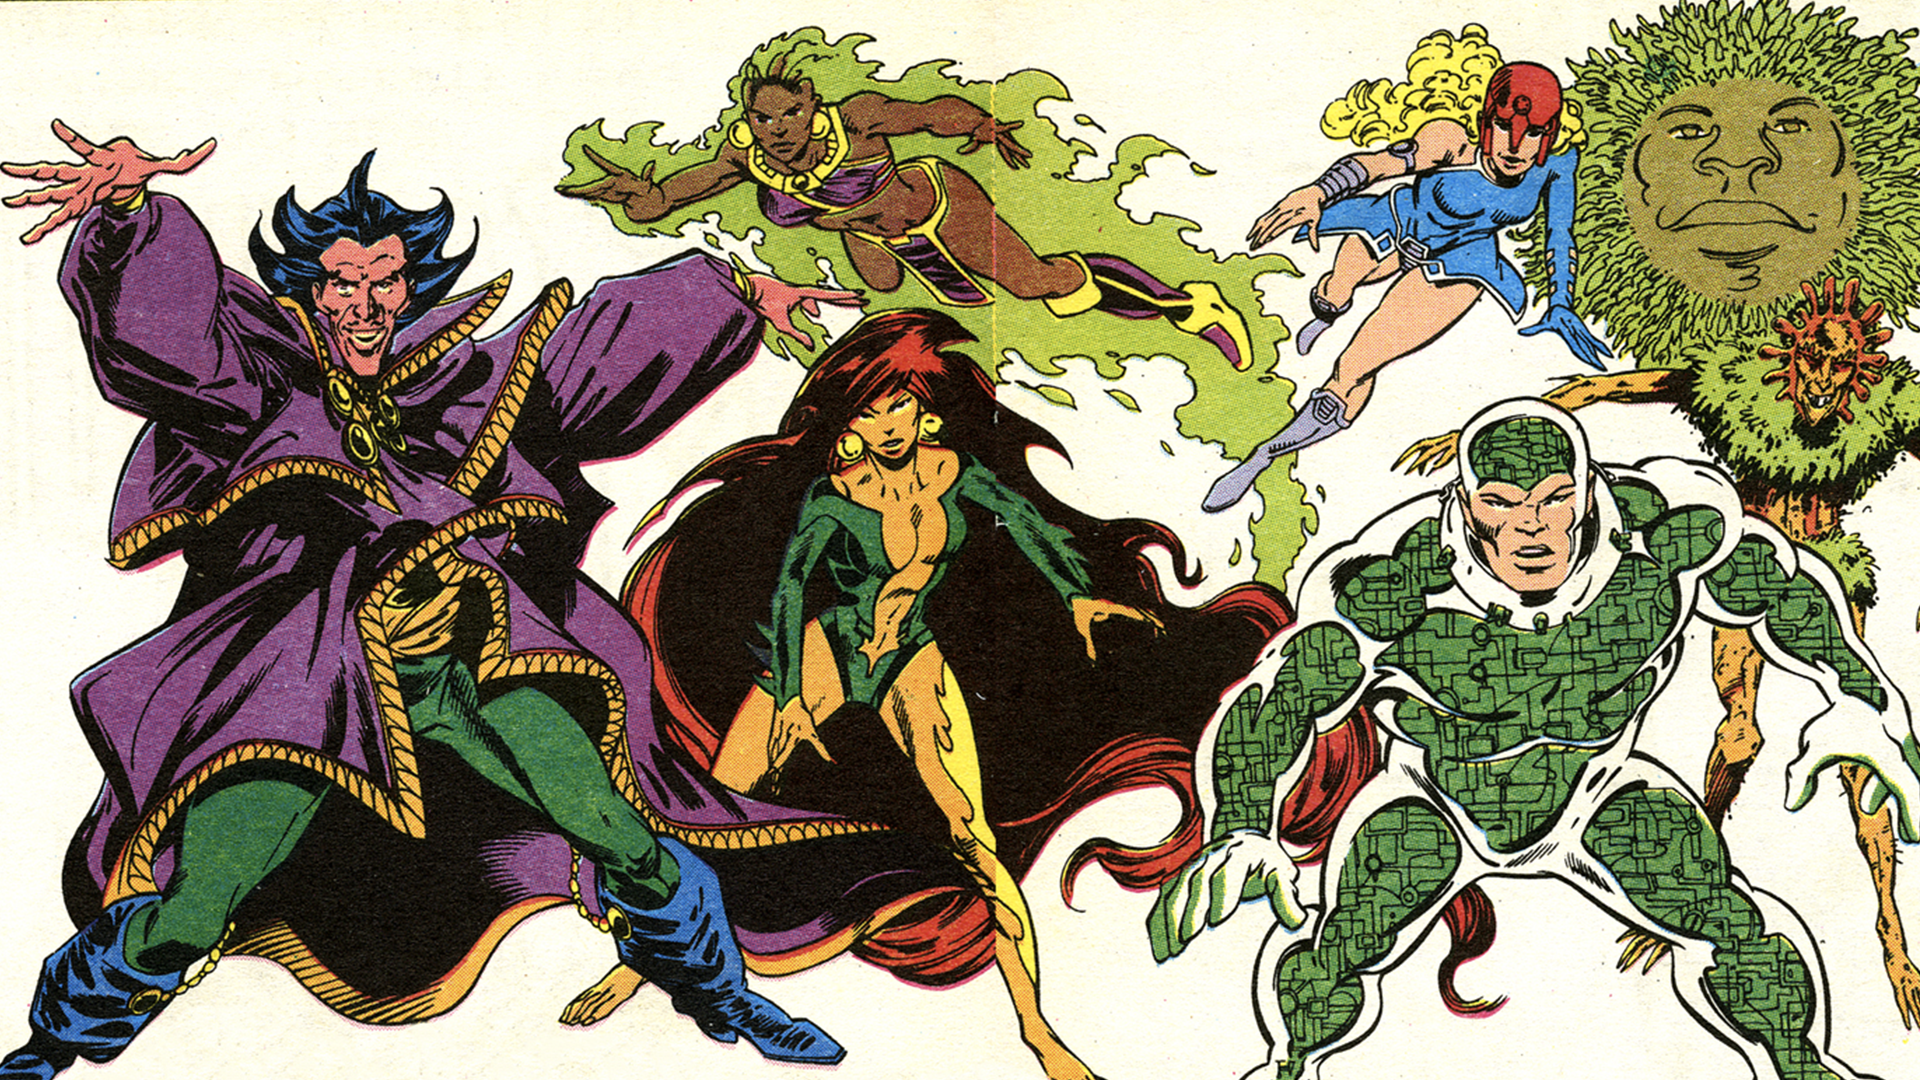 Watch extrao broke through as the first gay superhero from dc comics the creators of extrao at dc comics were breaking with the old comics code an industry wide form of self censorship when they created the gay character altavistaventures Gallery